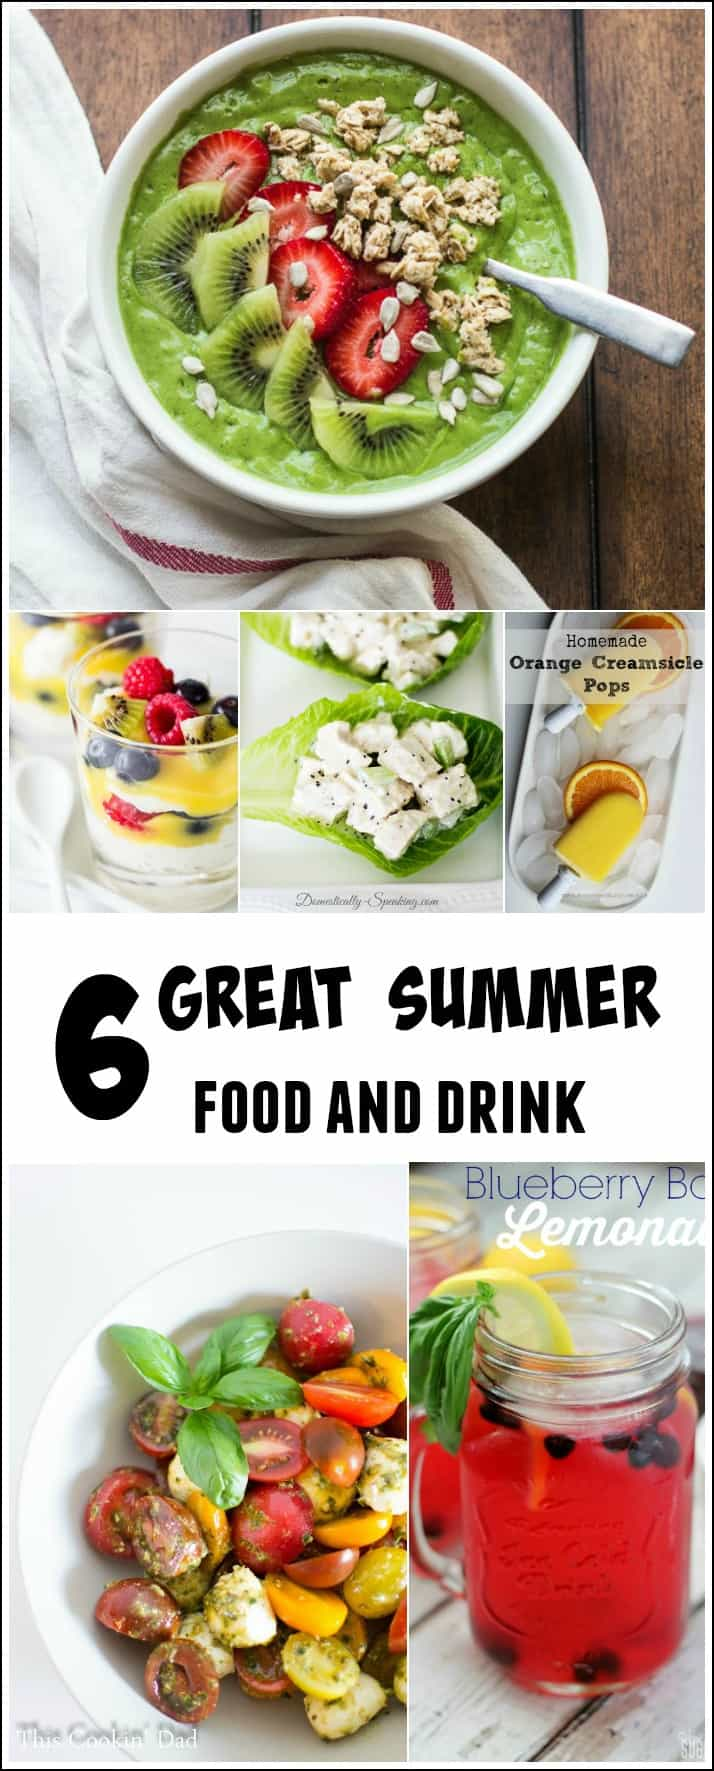 6 great summer food and drink